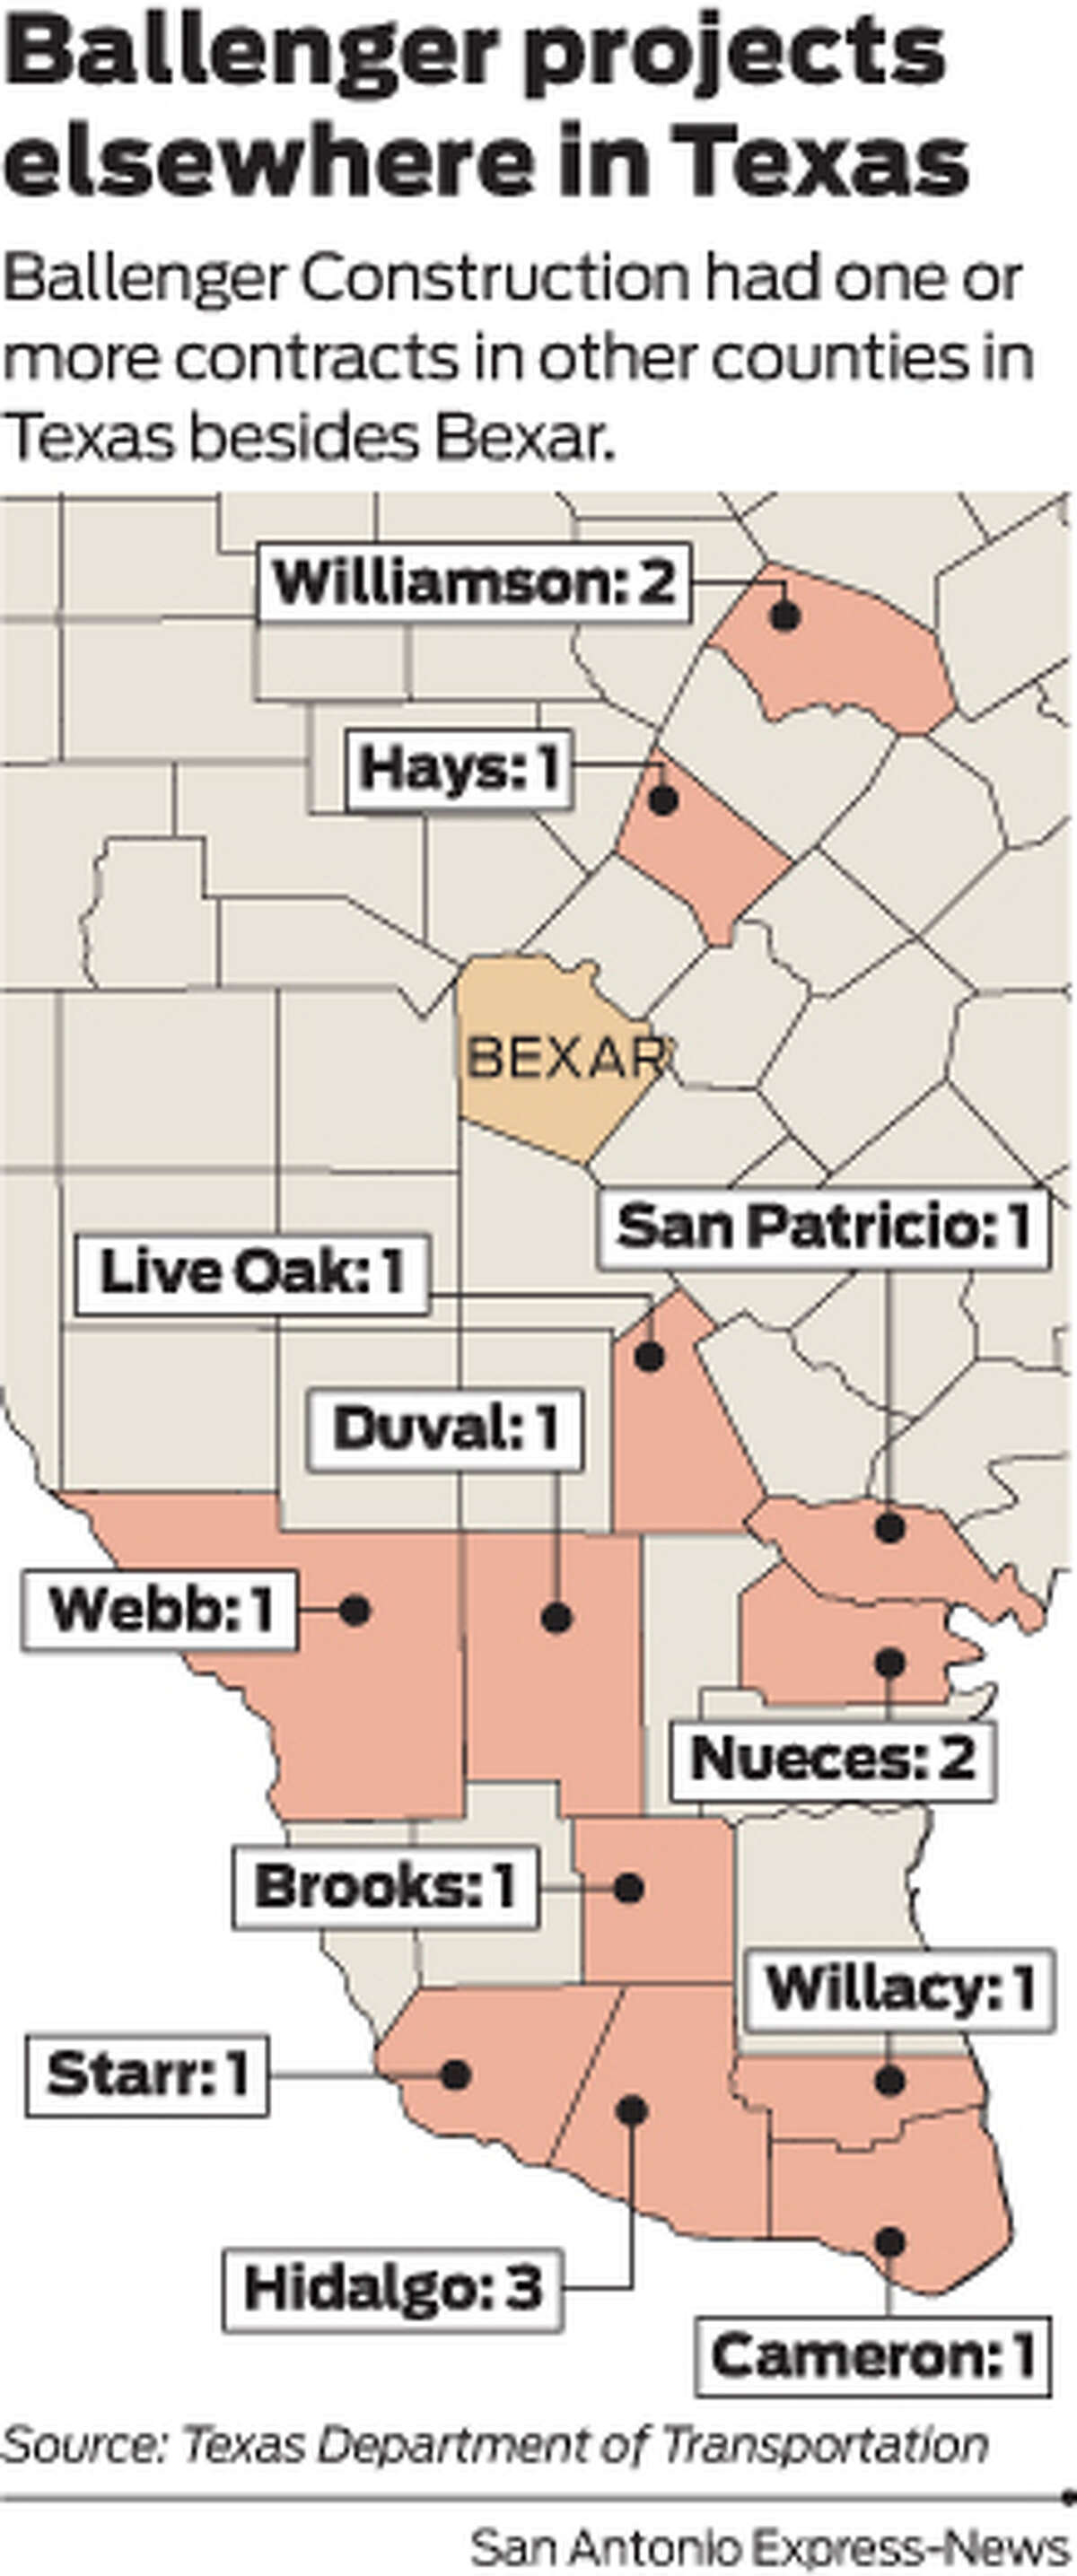 Ballenger Construction had one or more contracts in other counties in Texas besides Bexar.